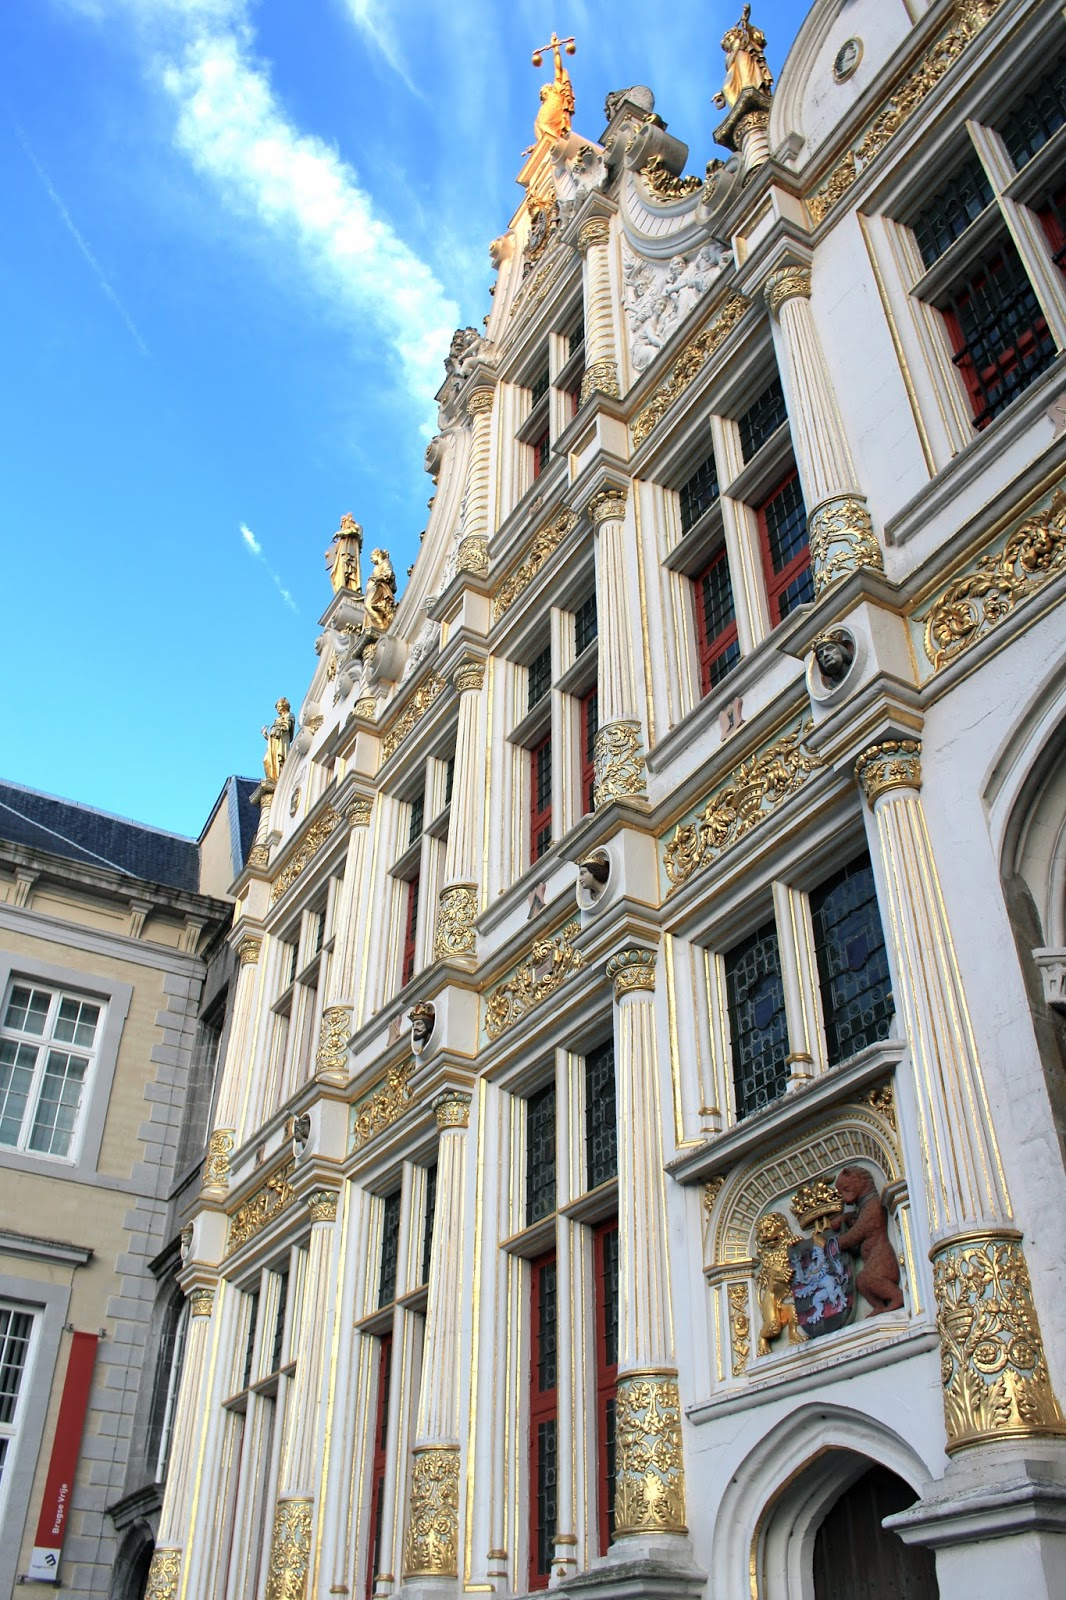 Beautiful white and gold architecture in Bruges Belgium